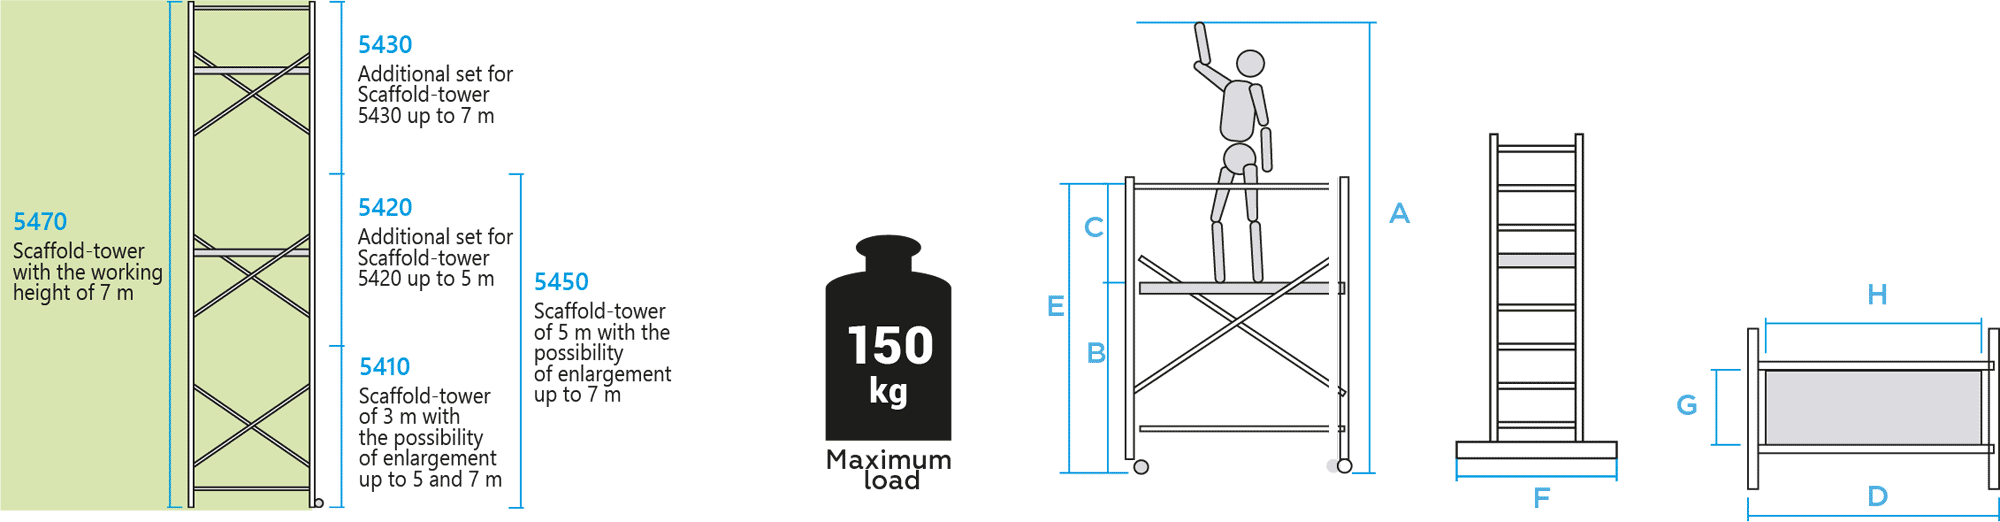 Schema: Scaffold-tower with the working height of 7 m NV 5470